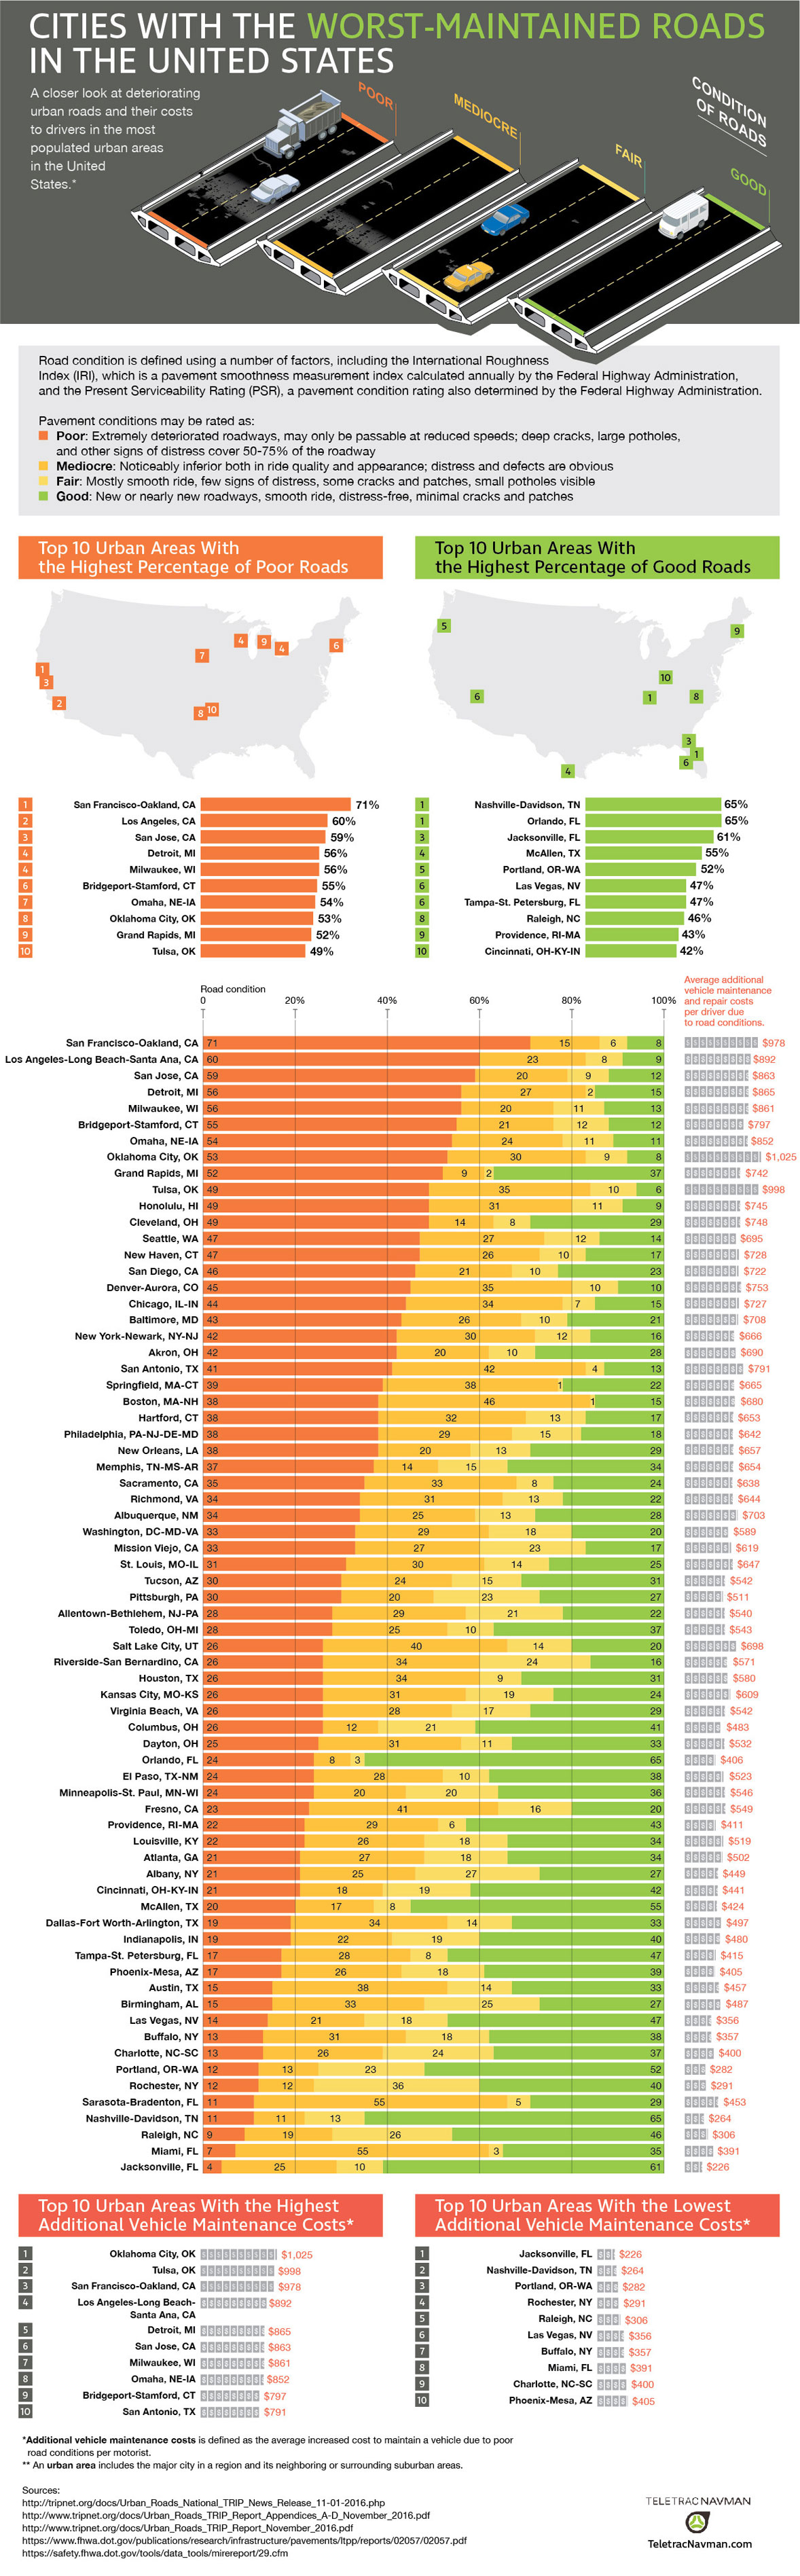 Worst Maintained Roads in the United States - TeletracNavman.com Infographic